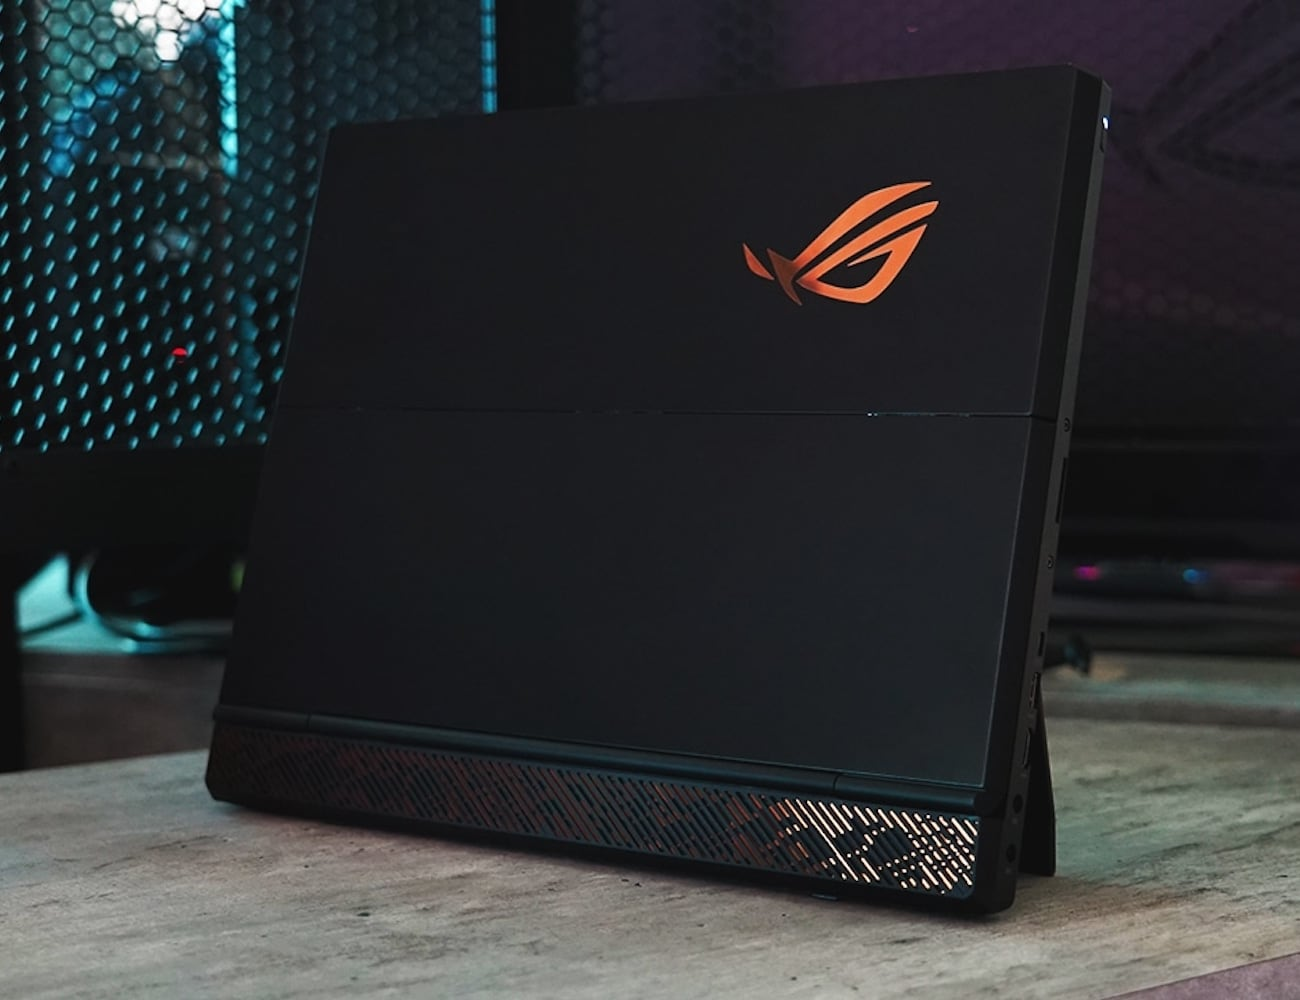 8 Gaming laptops worthy of taking you to the next level - Asus ROG Mothership 01